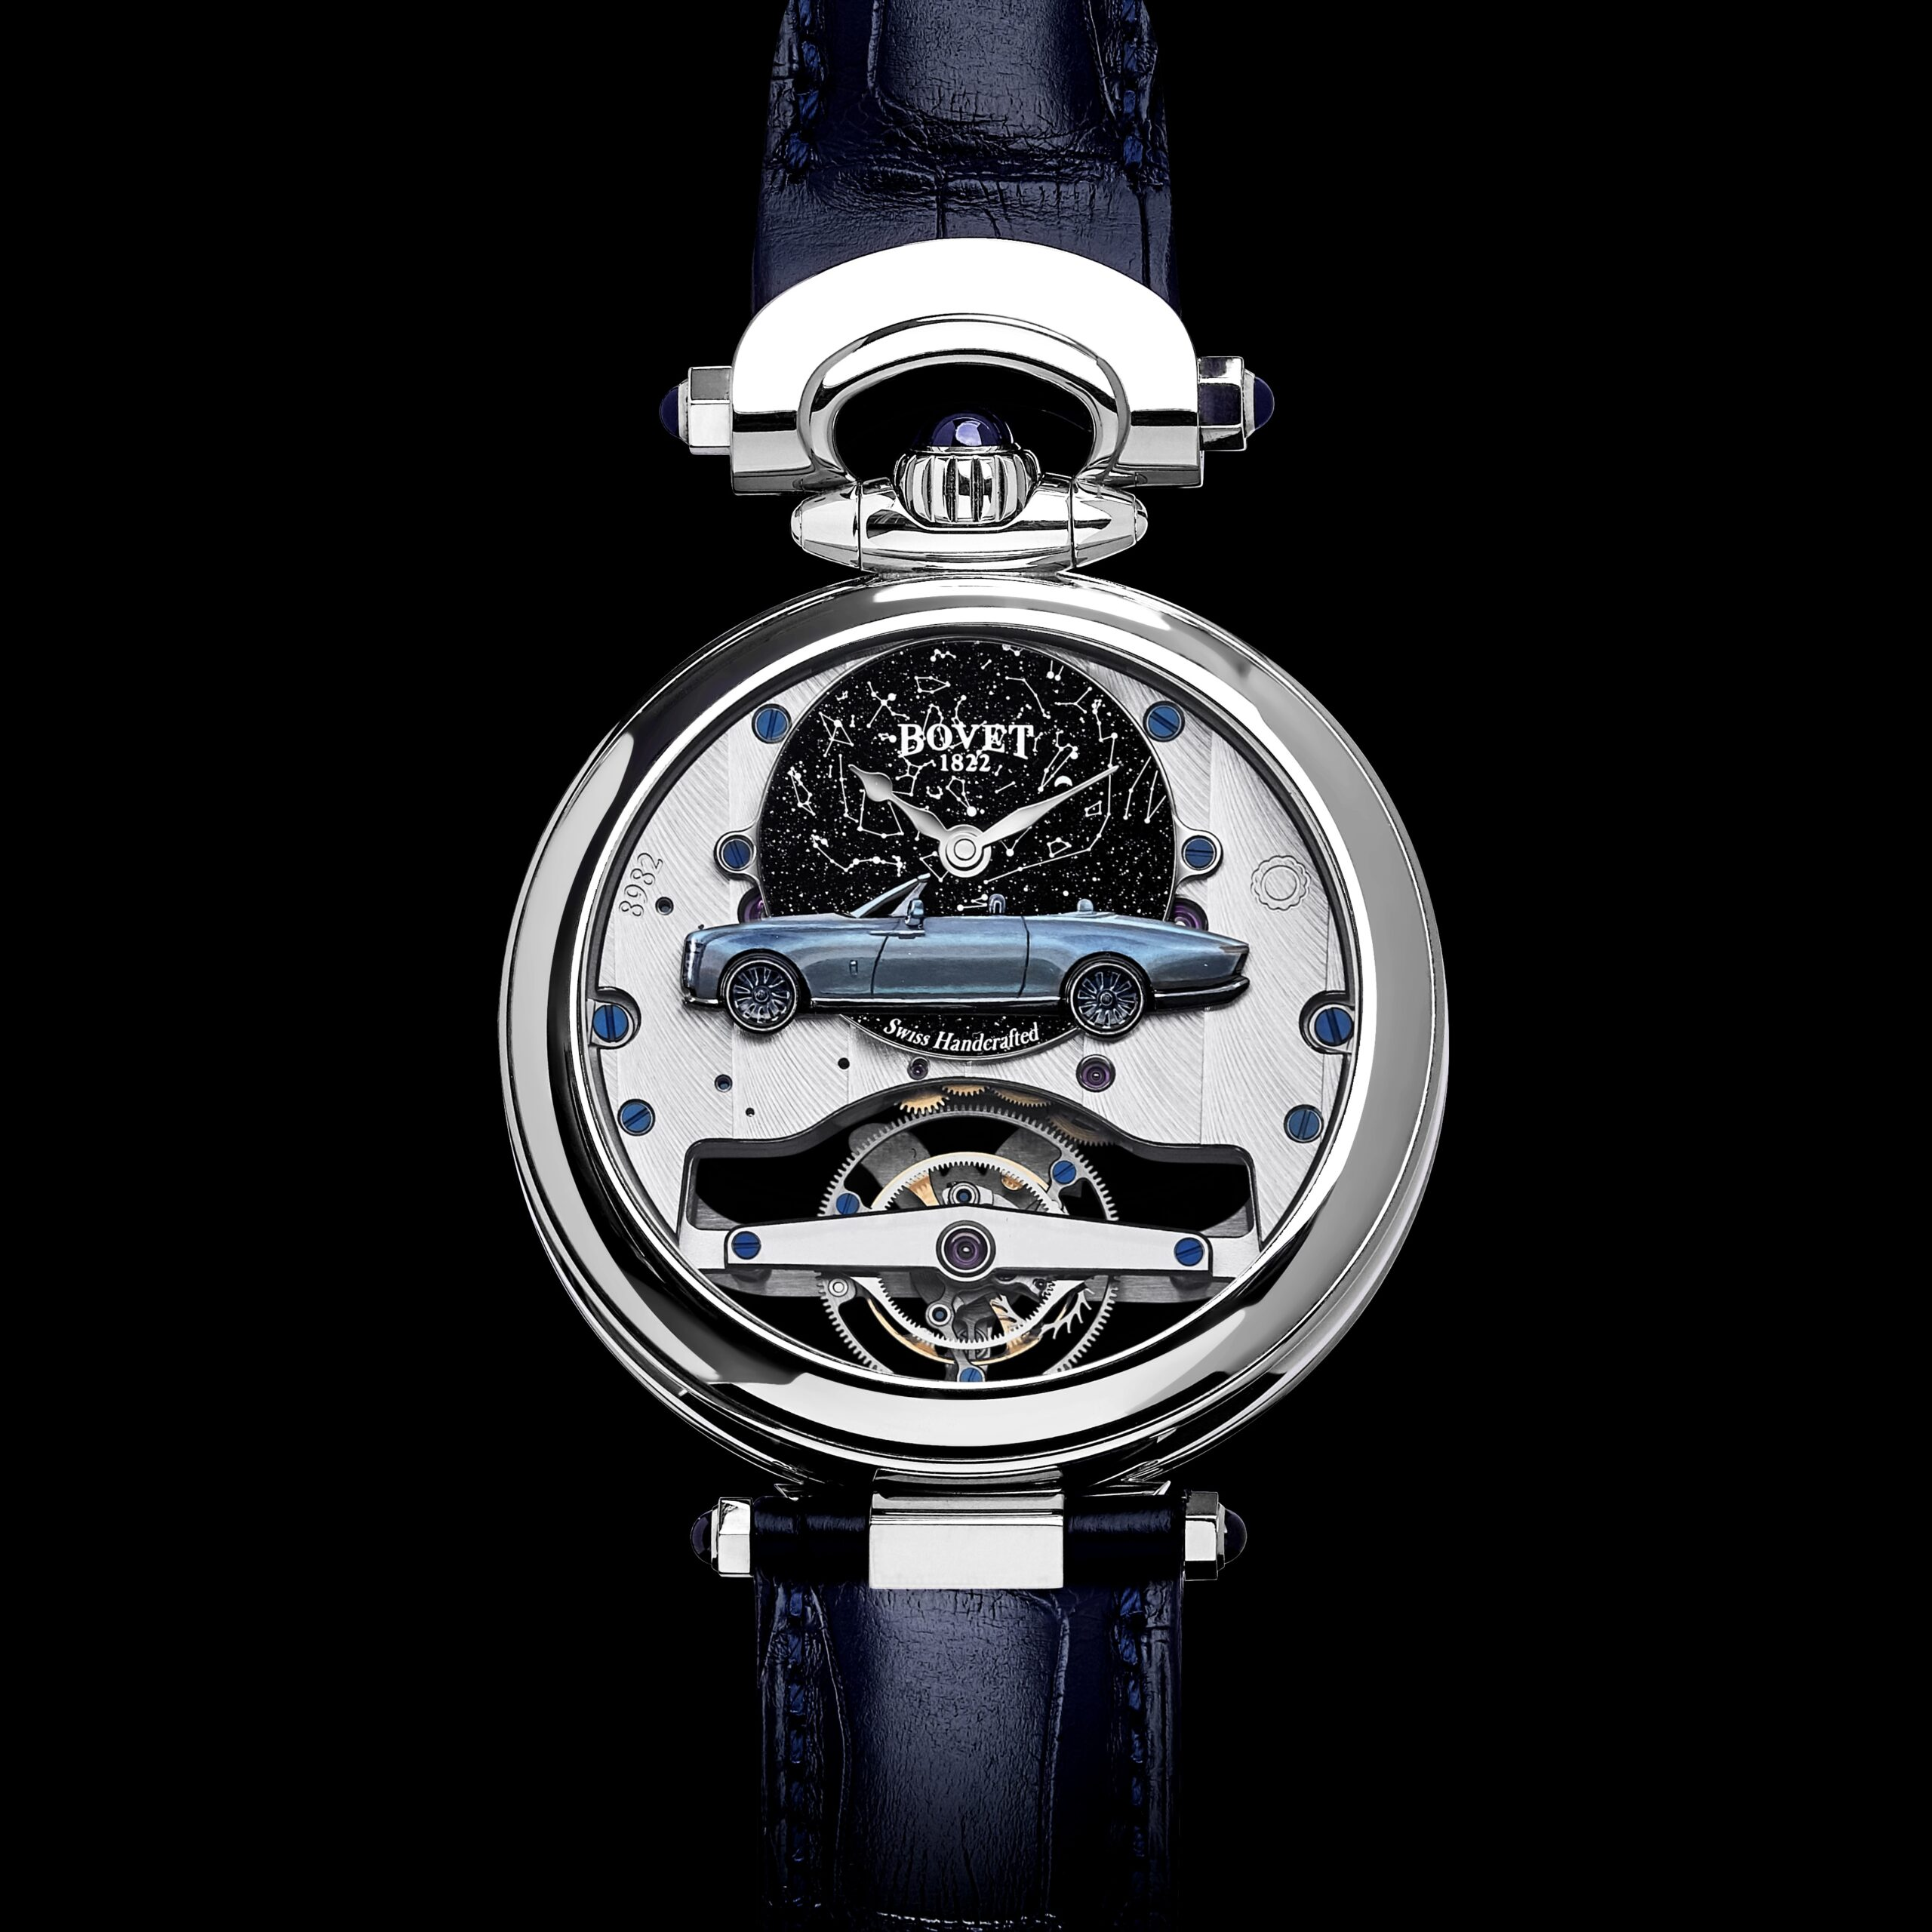 Rolls-Royce Tail Bovet Gentlemans Timepiece provided by Gerry Spahn and Rolls-Royce for use by 360 MAGAZINE.